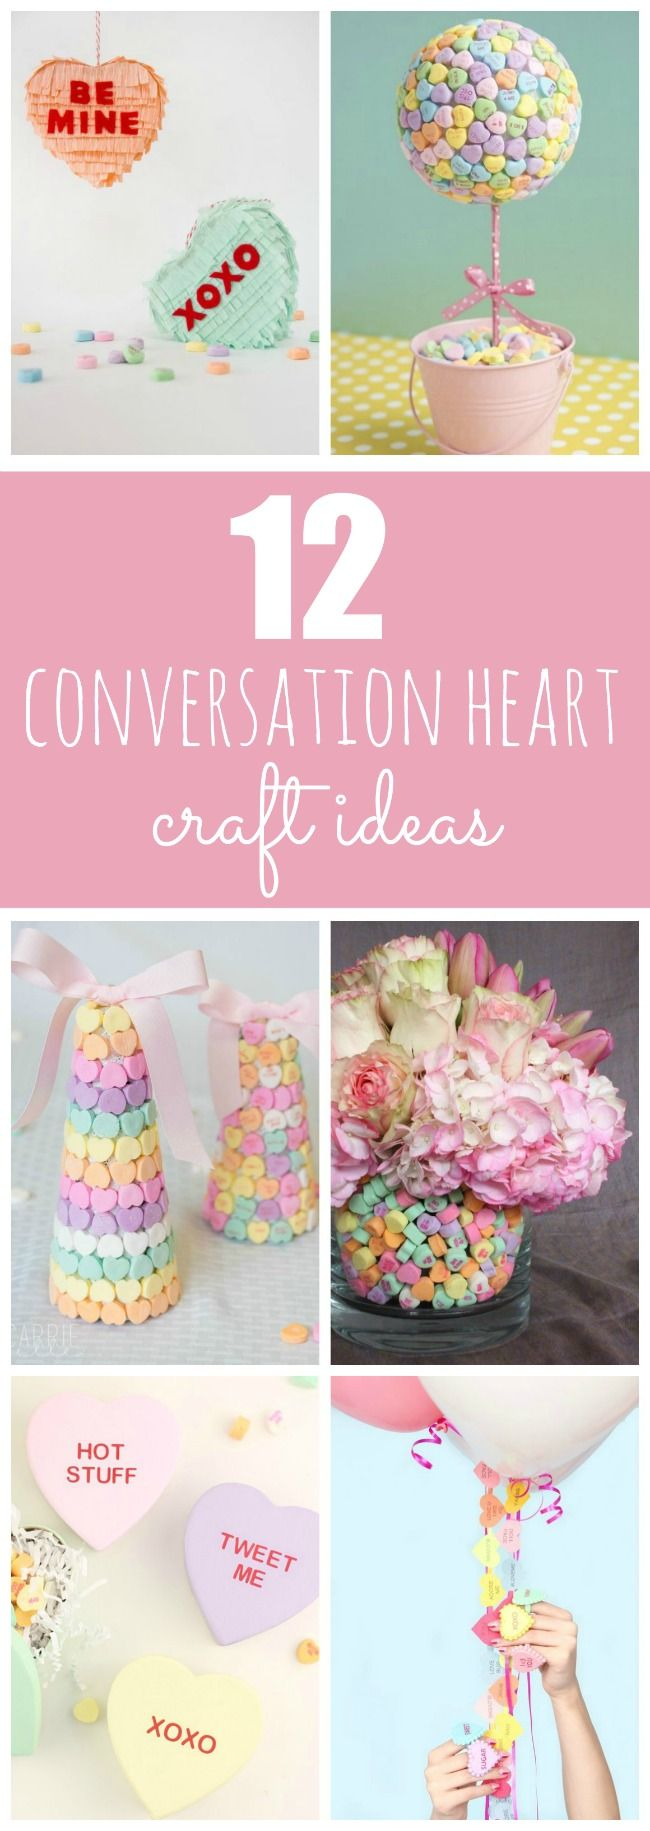 DIY Conversation Heart Craft Ideas for Valentine's Day featured on Pretty My Party